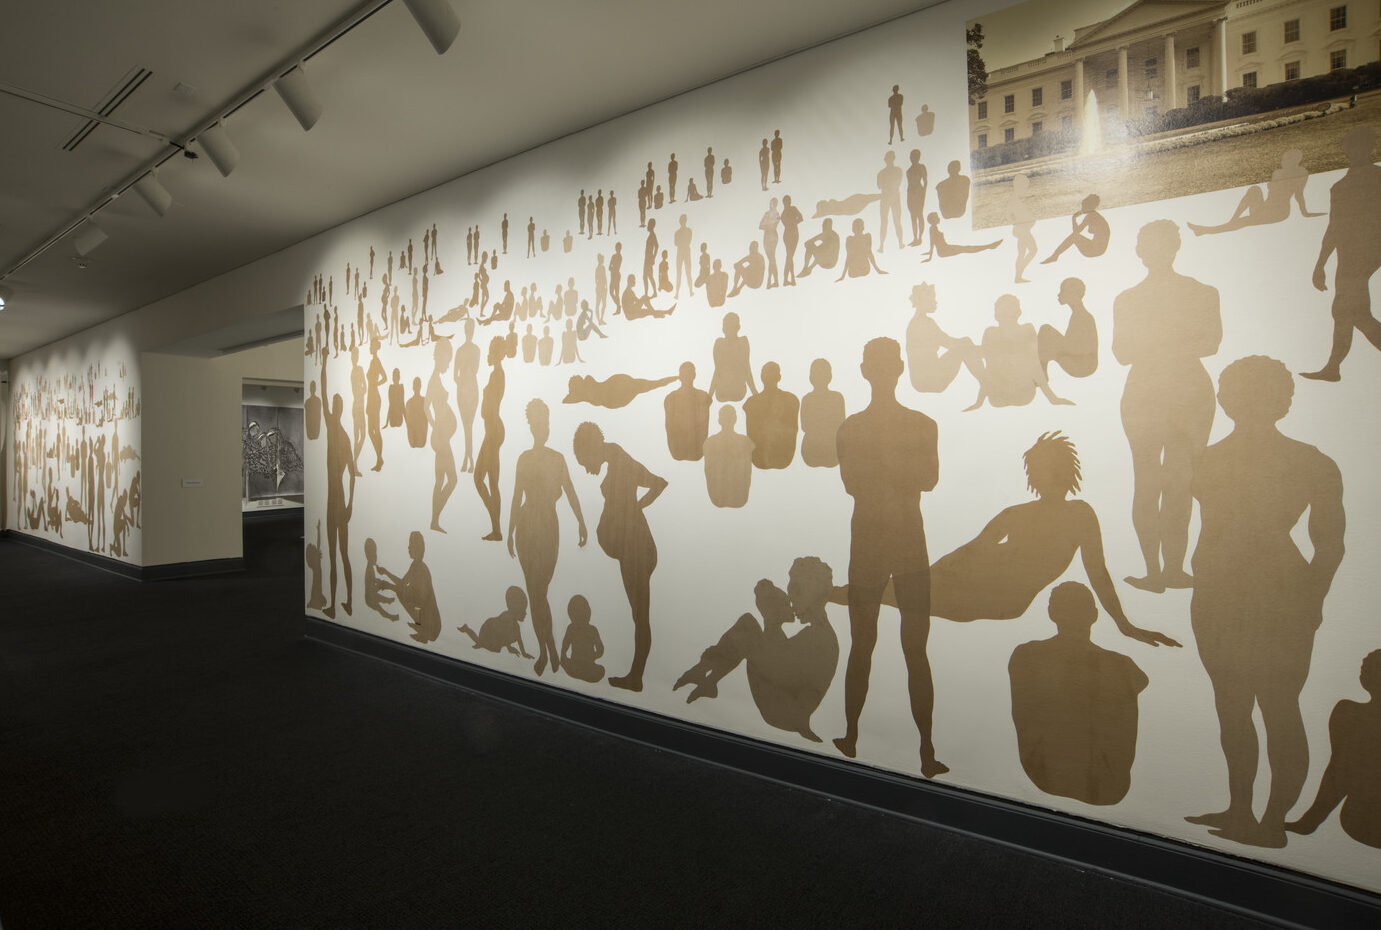 A long rectangular wall with many silhouetted figures made out of brown Kraft paper. The figures are of men, women and children in different positions as if in a landscape. They are different sizes to indicate foreground, middle ground and background. A sepia-toned photograph of the White House at the upper right corner.